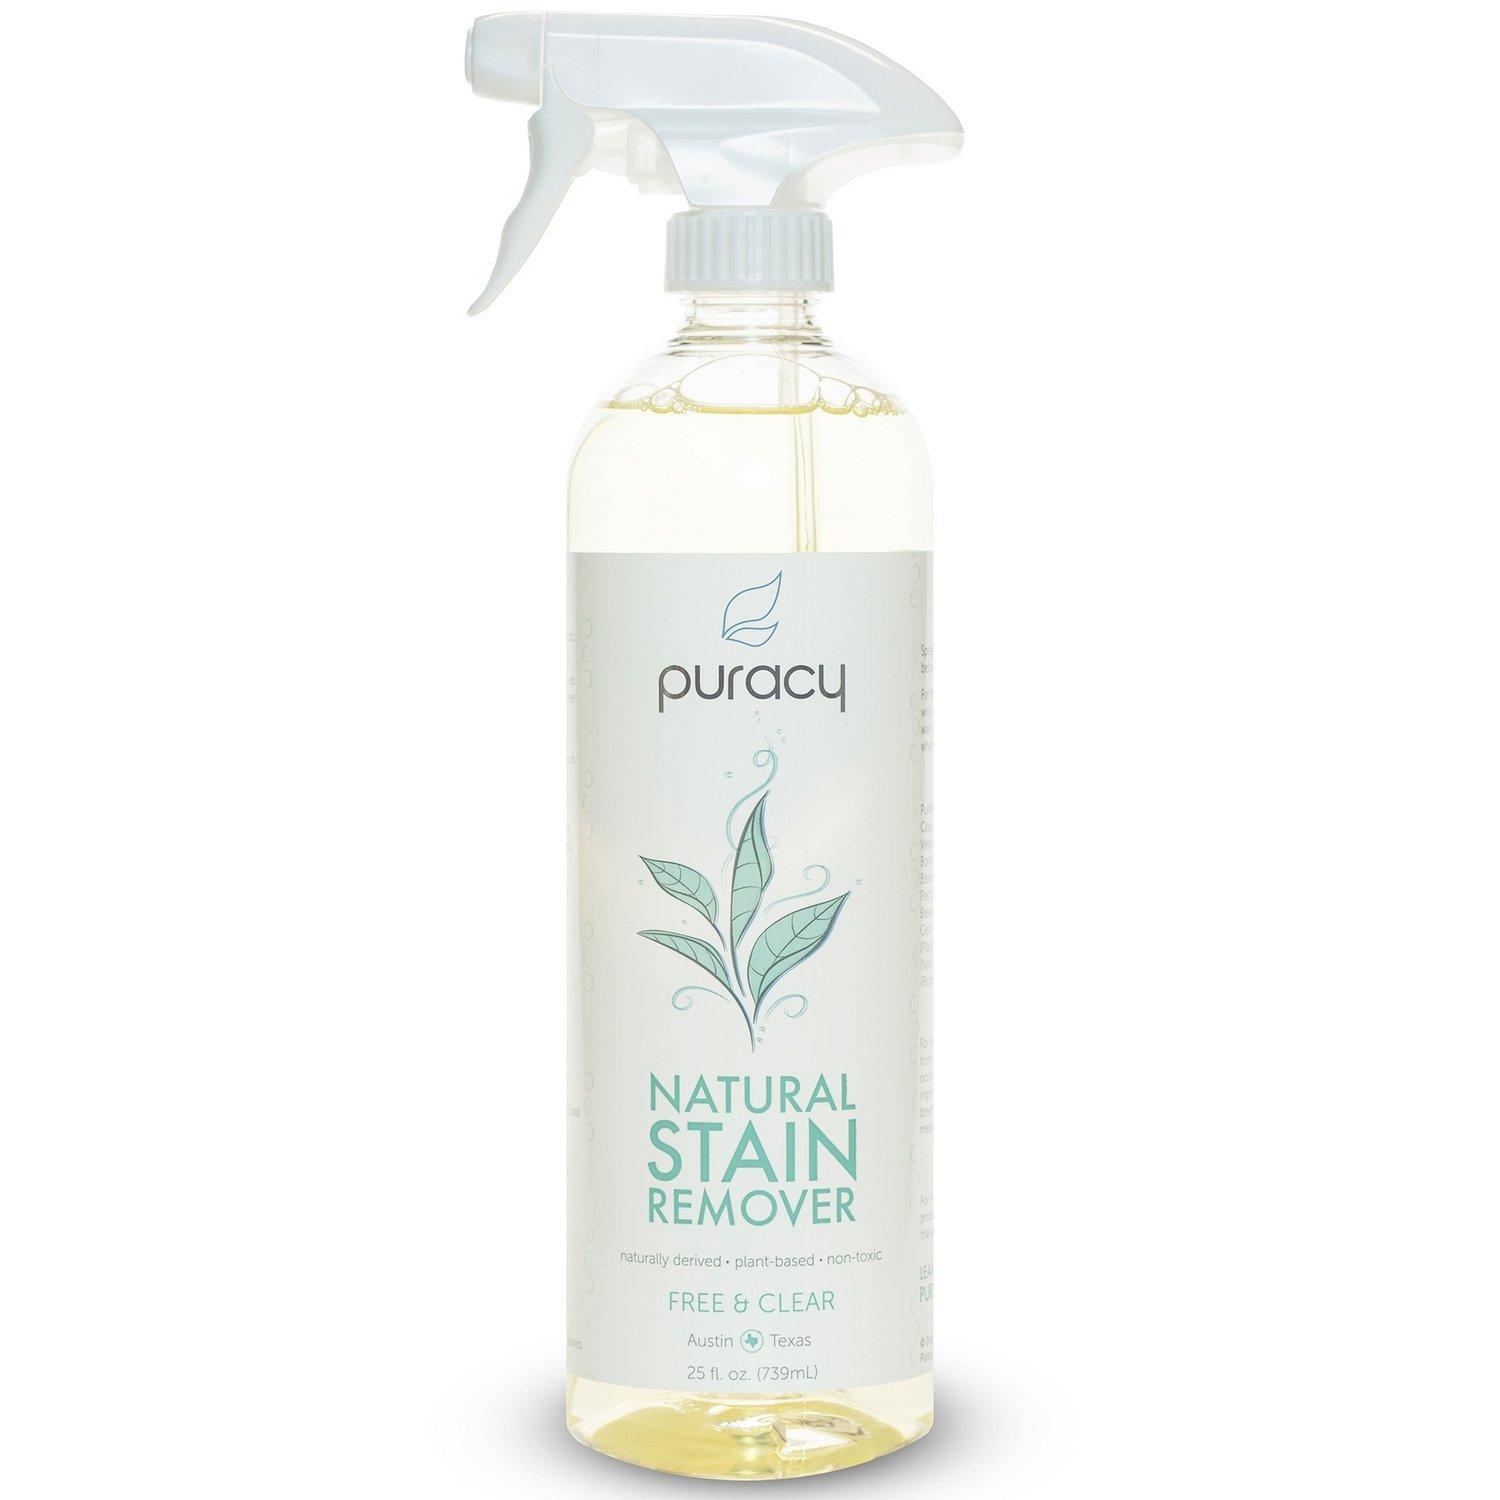 Puracy Natural Stain Remover